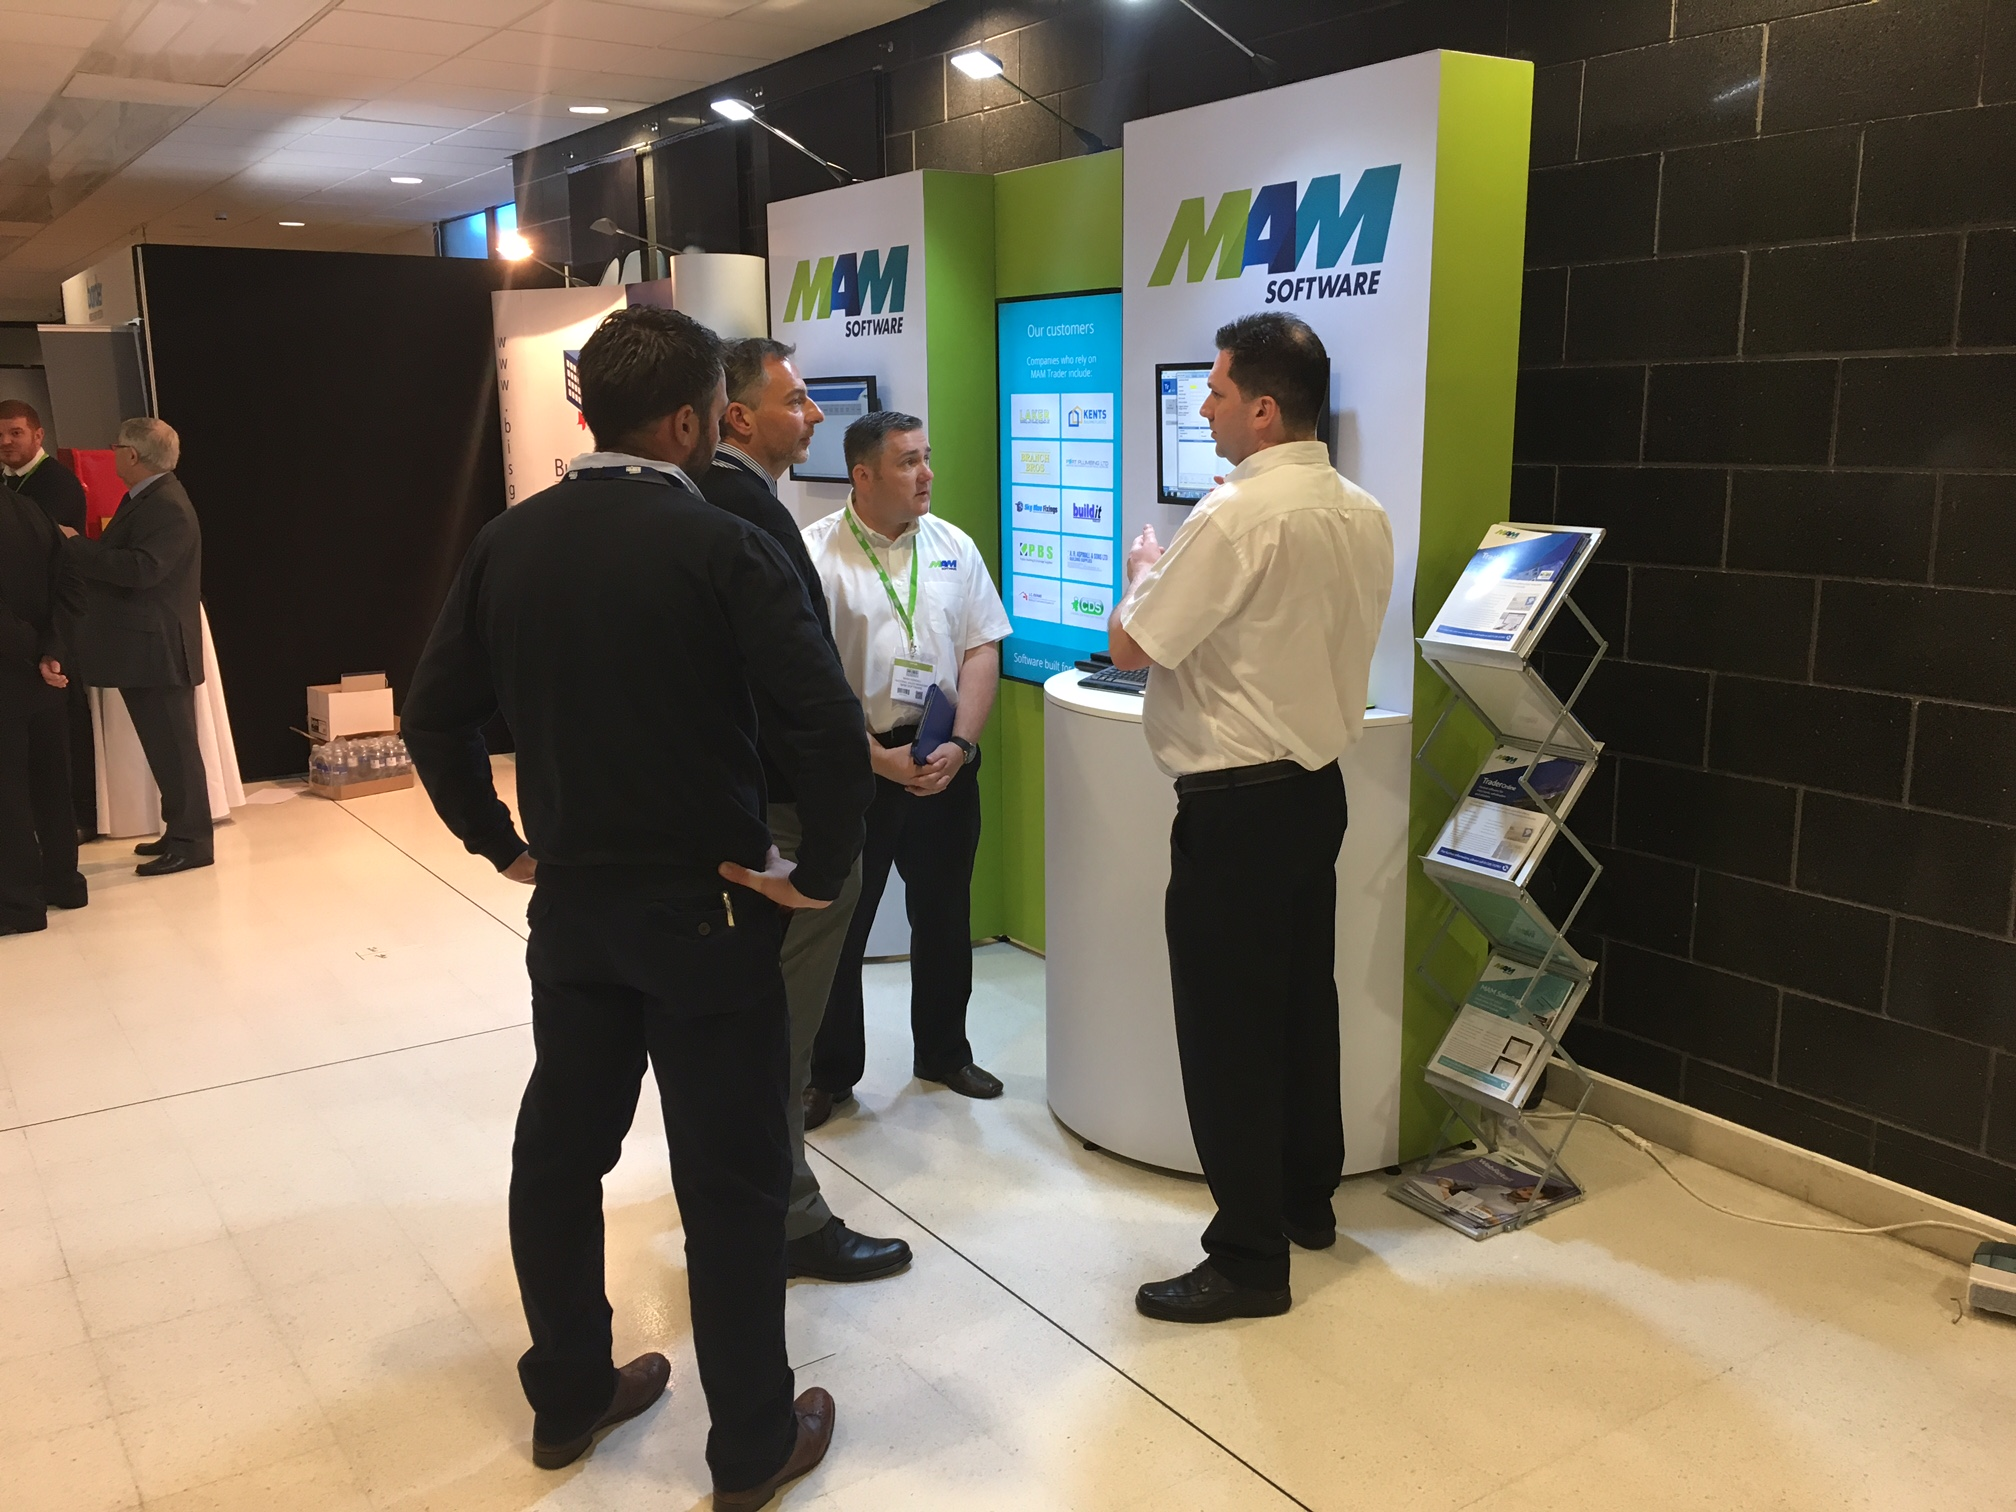 Modular Exhibition Stand Job : Exhibition stand design ideas to draw more people eventbrite uk